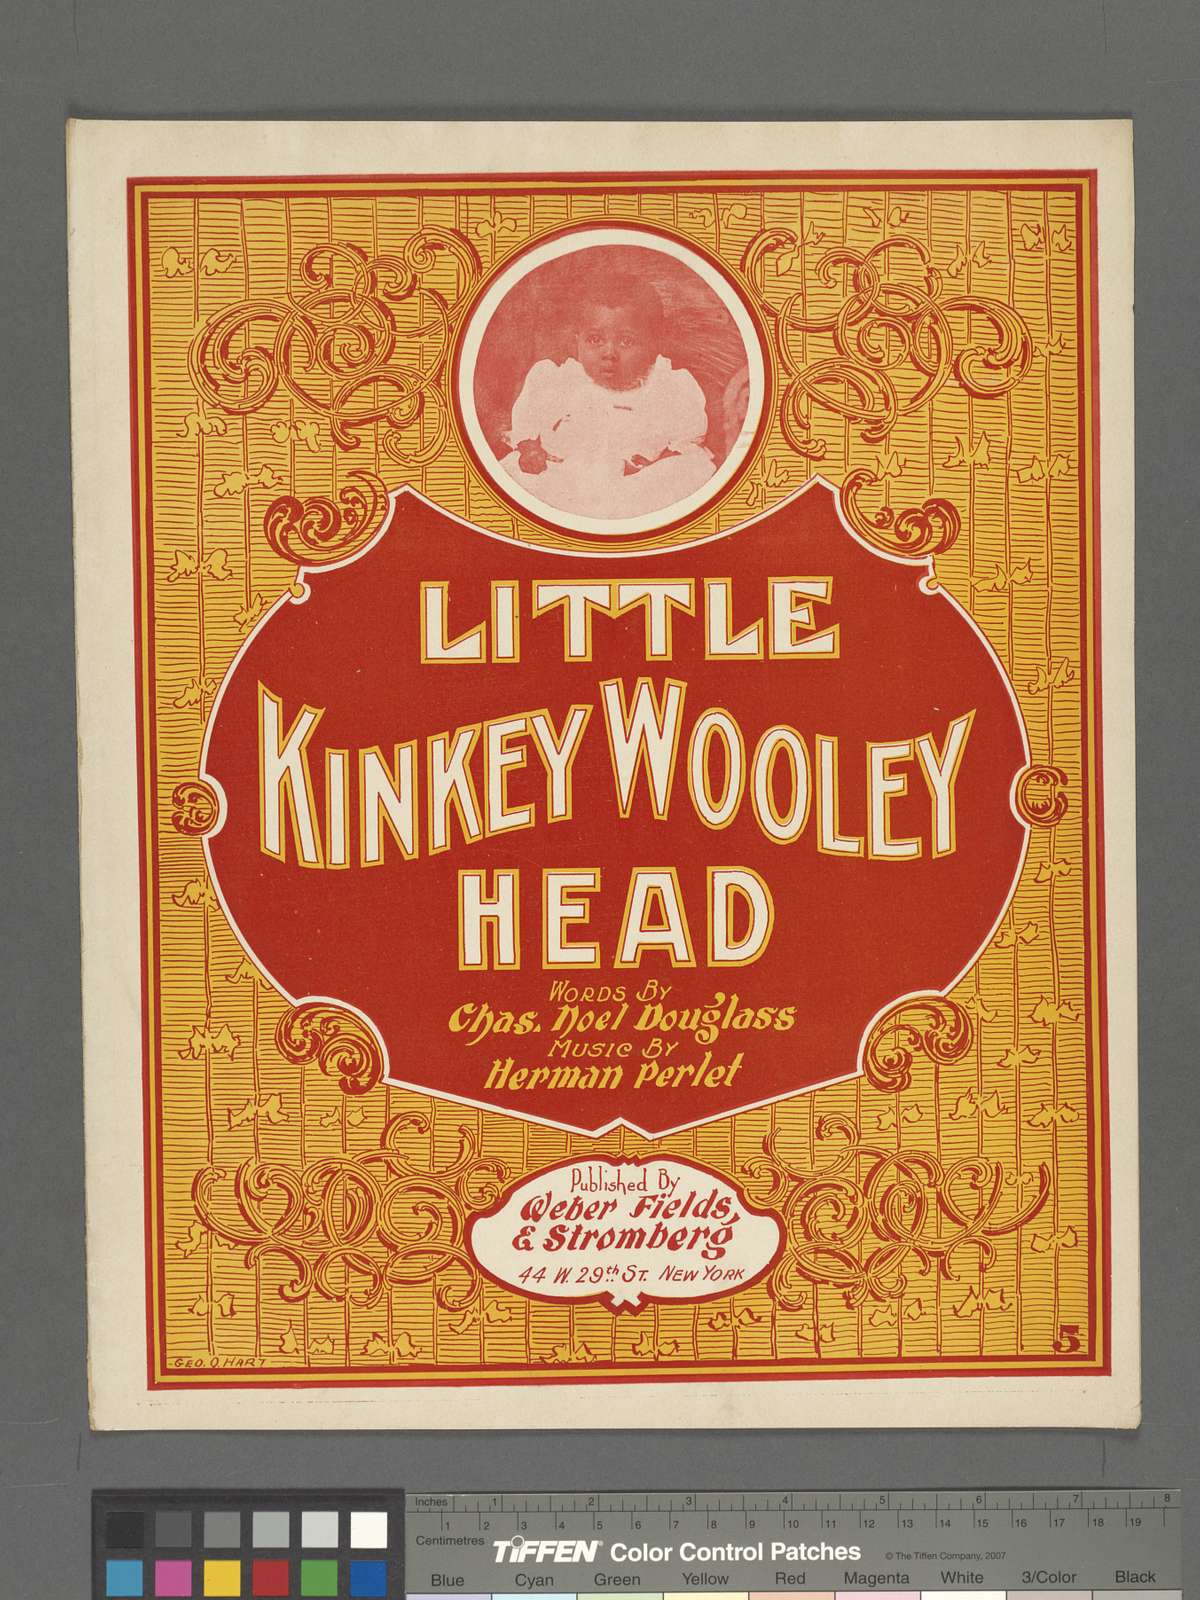 Little Kinkey wooley head